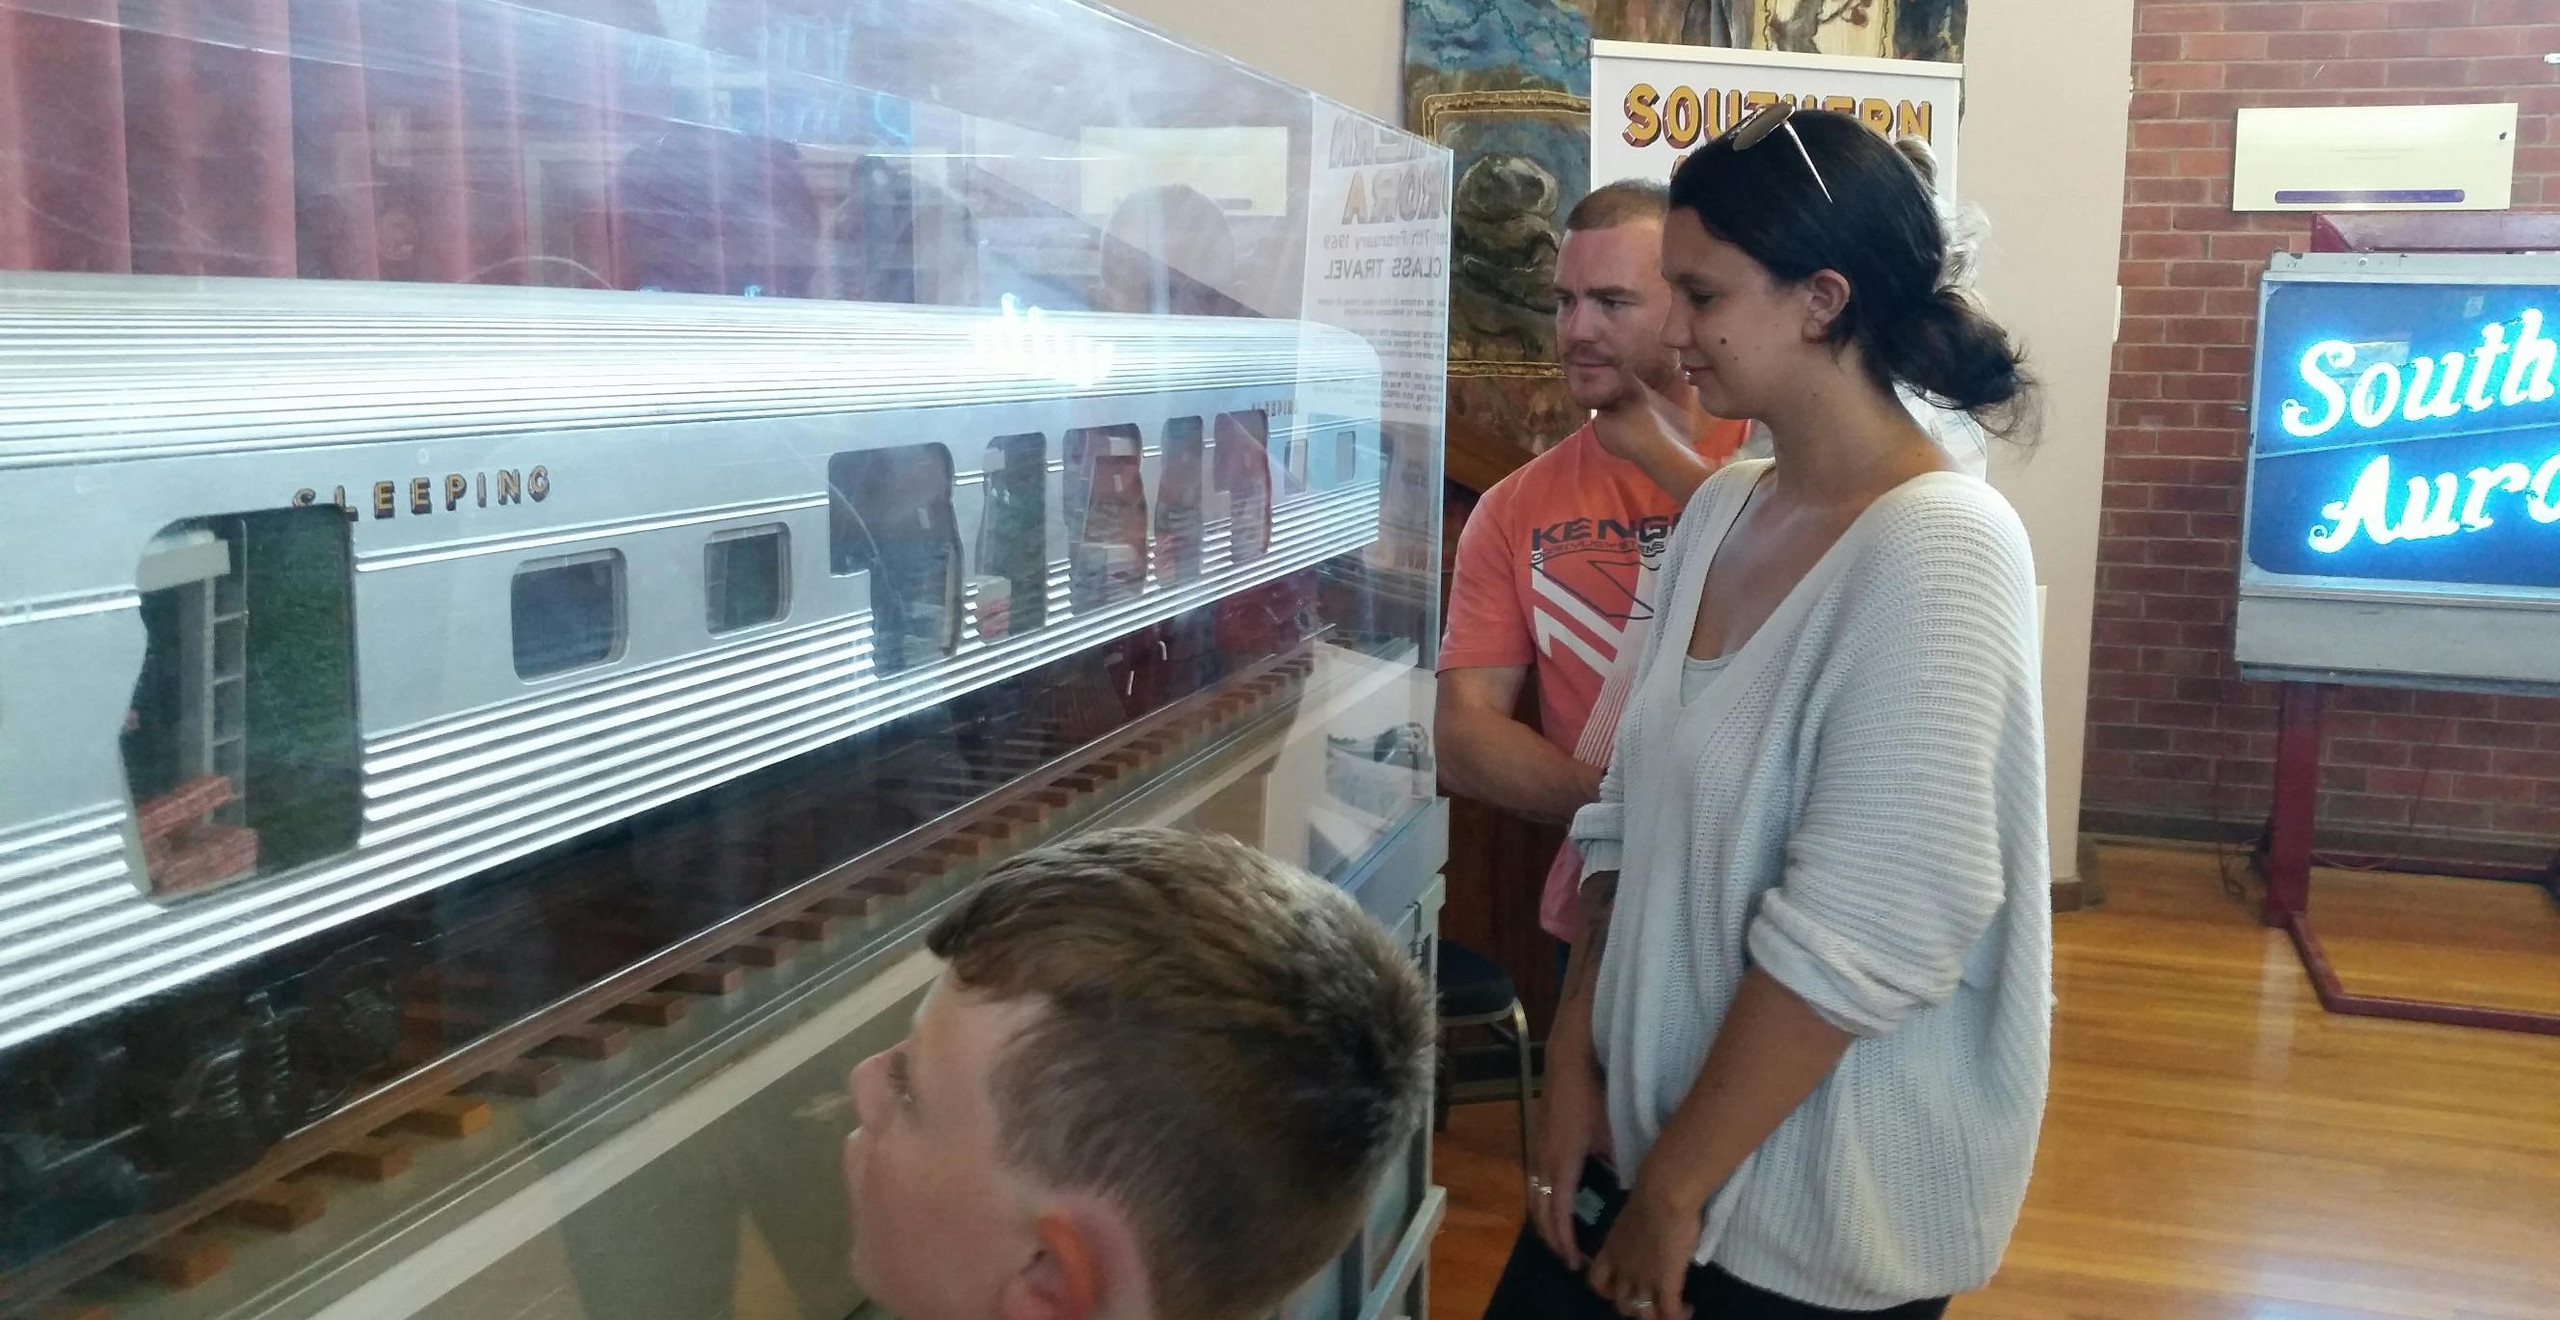 Visitors enjoy viewing the sectioned large-scale model of the Southern Aurora sleeping car on display at the Violet Town Community Complex. -Chris Fielder